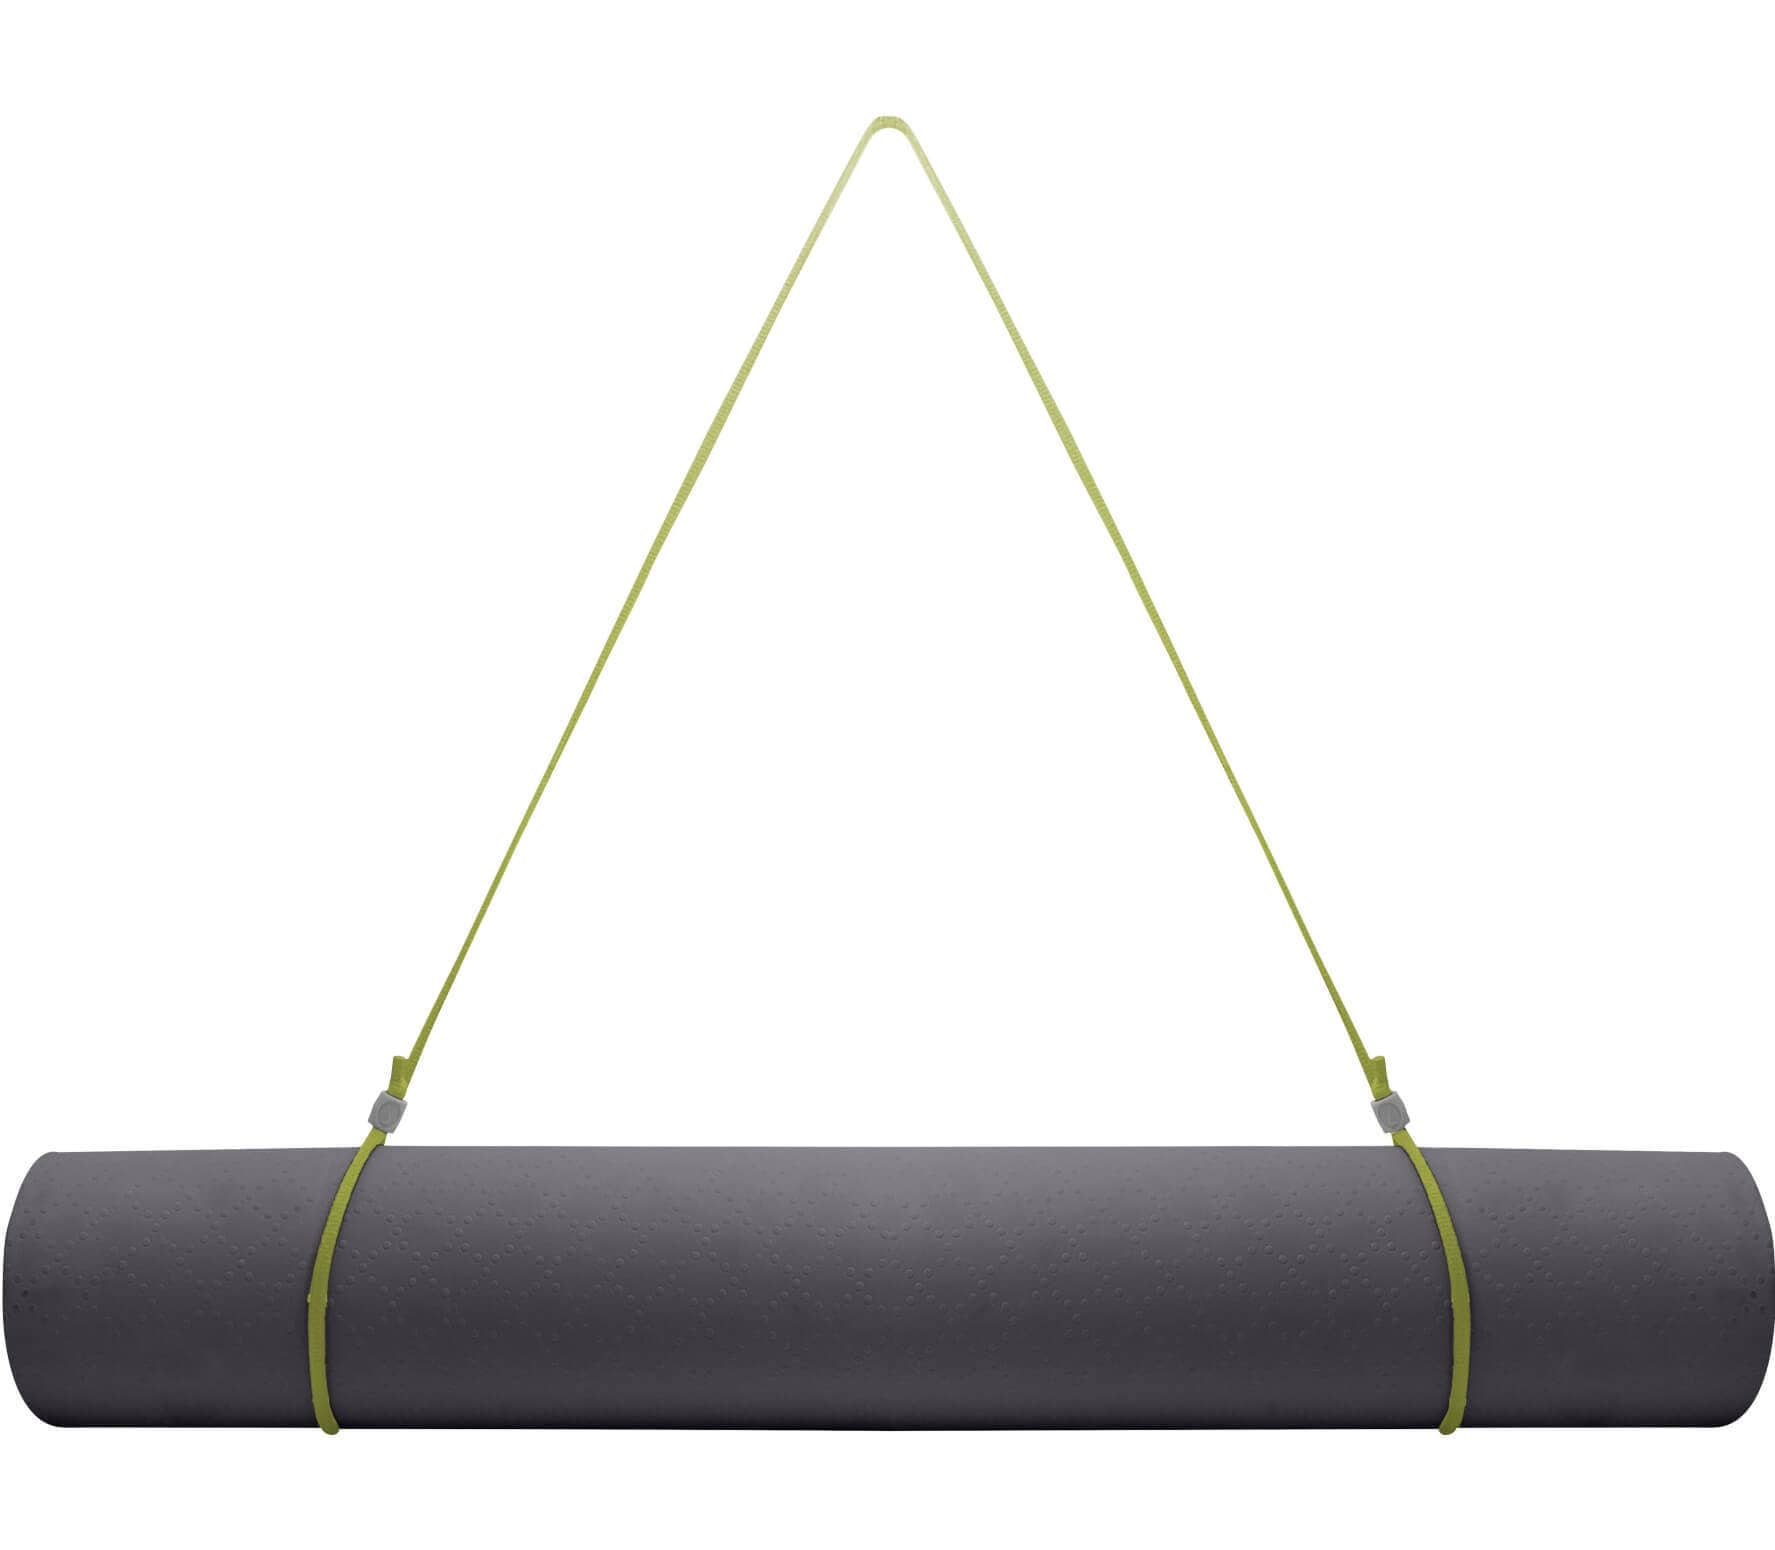 Nike - Fundamental yoga mat 3mm (grey)